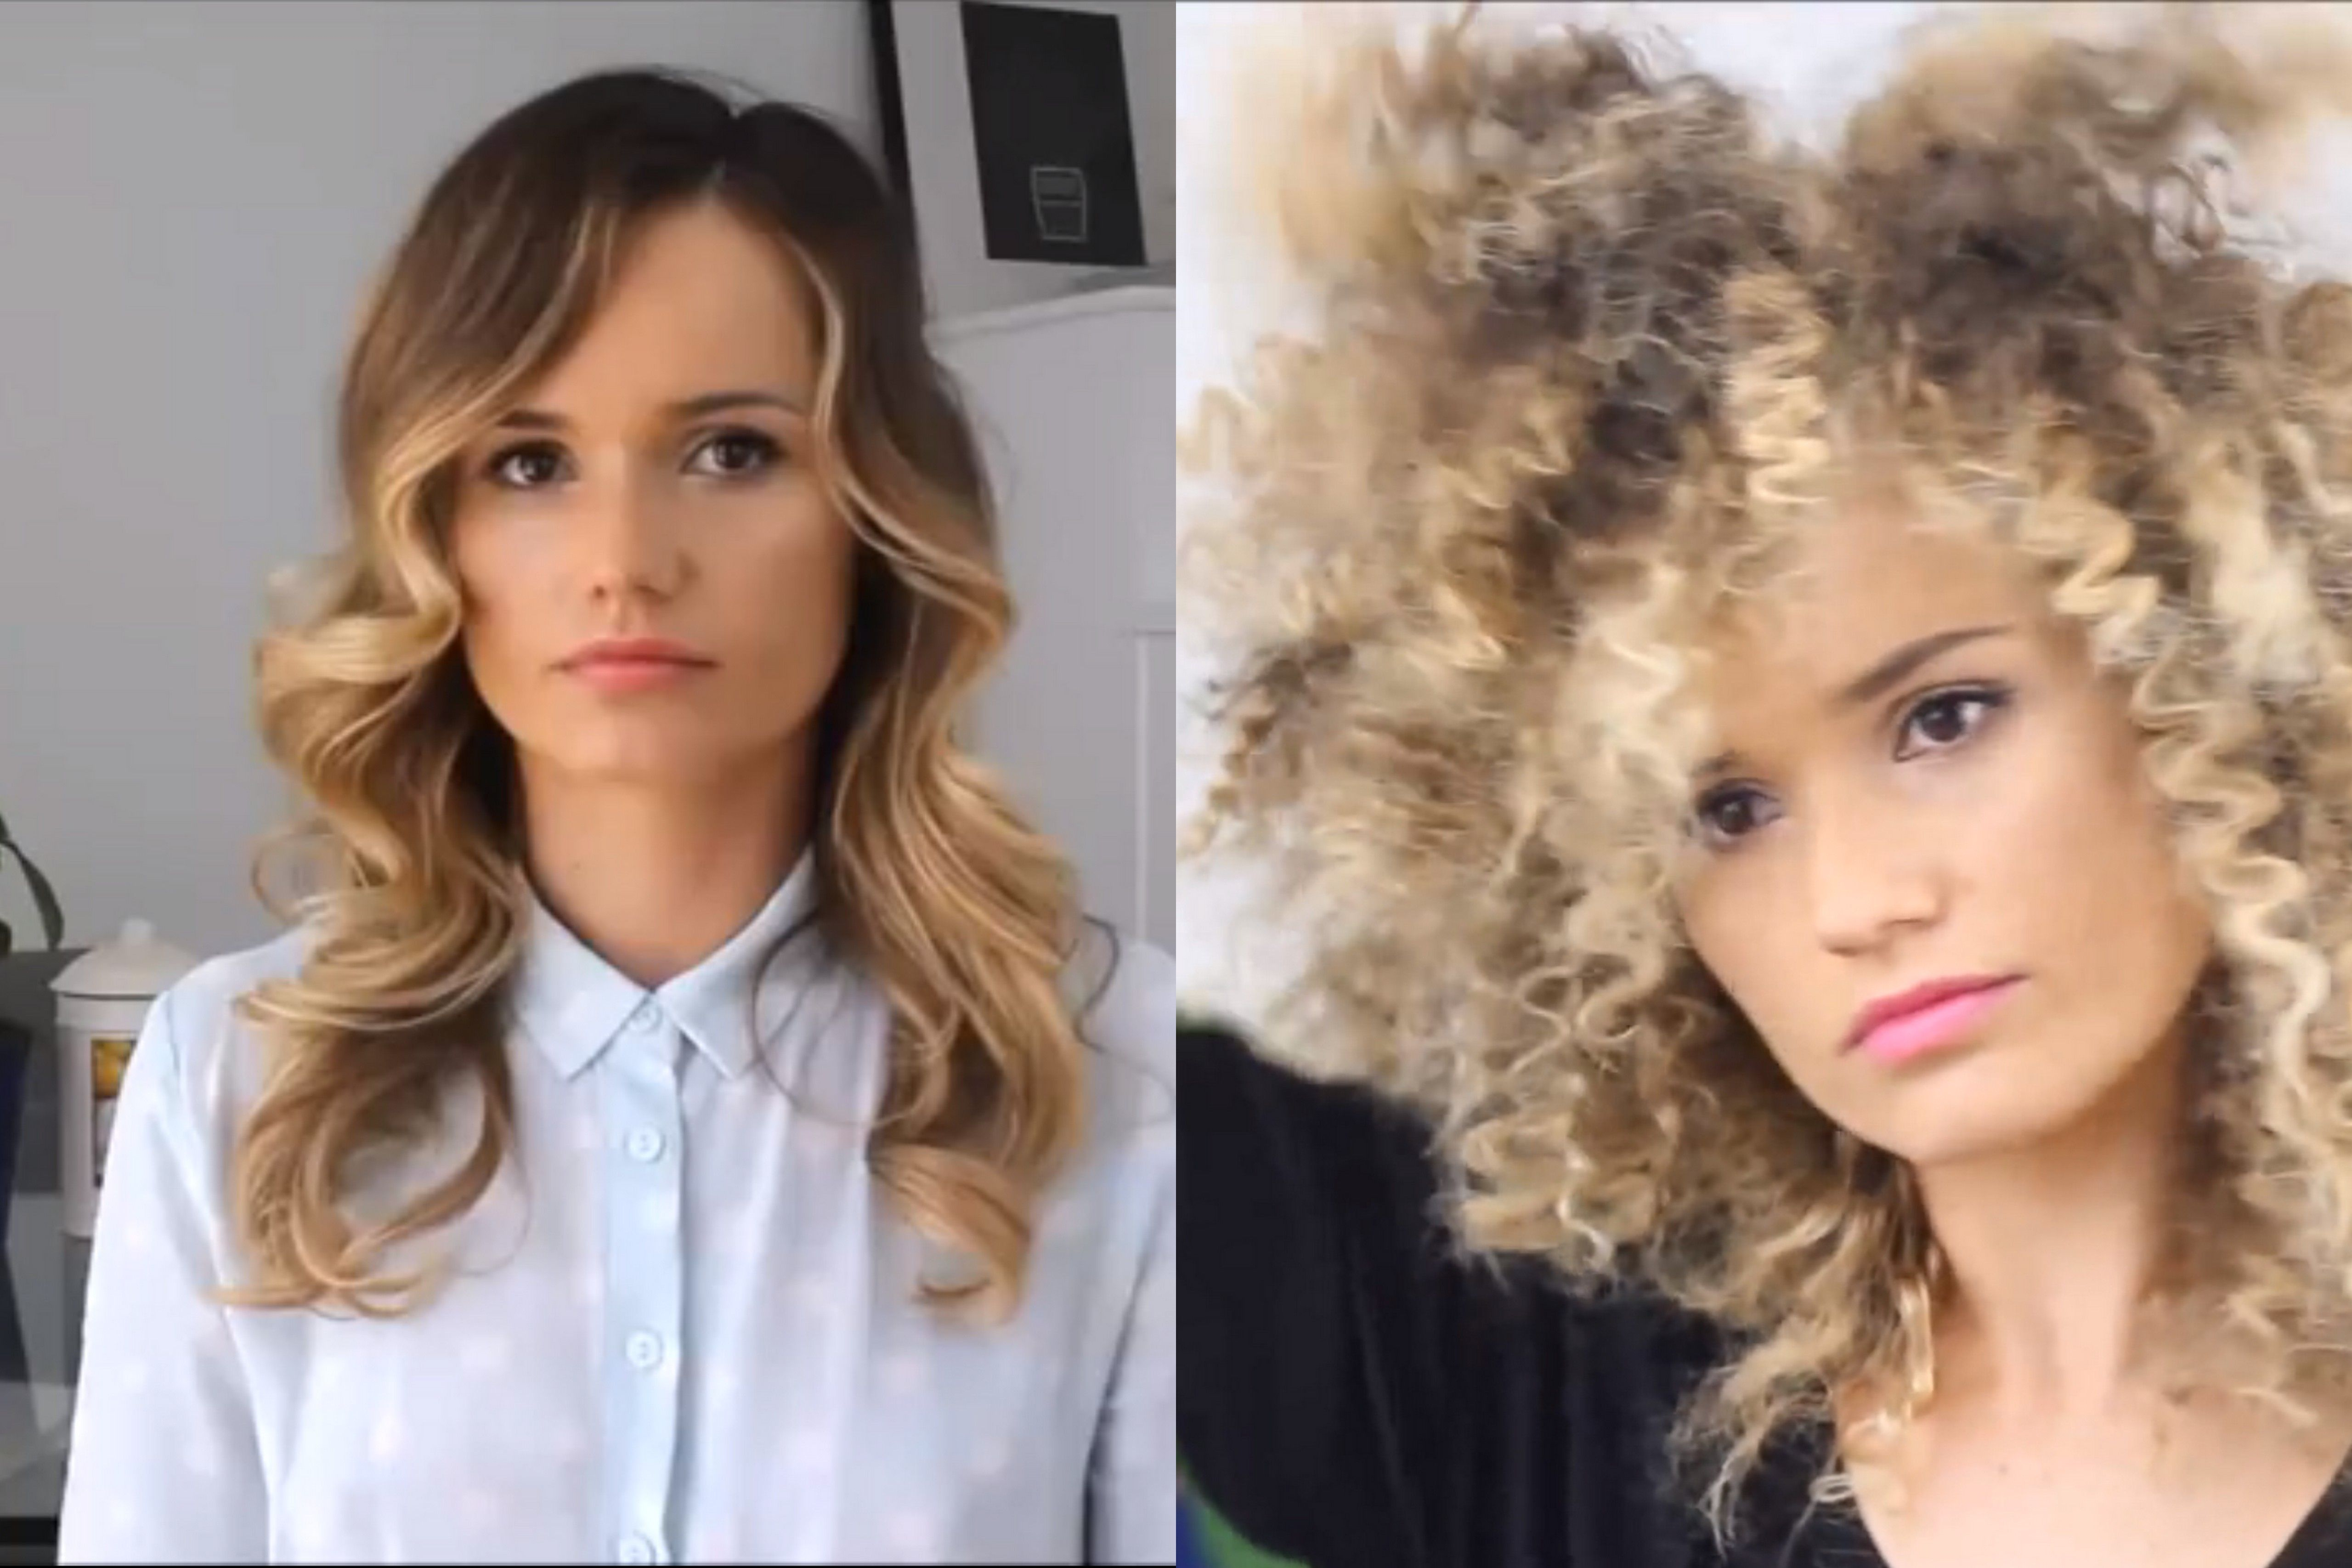 White Vlogger Eskimohair Posts Youtube Tutorial On How To Turn Straight Hair Into An Afro Texture Afro Hair Tutorial Afro Hair White Afro Hairstyles